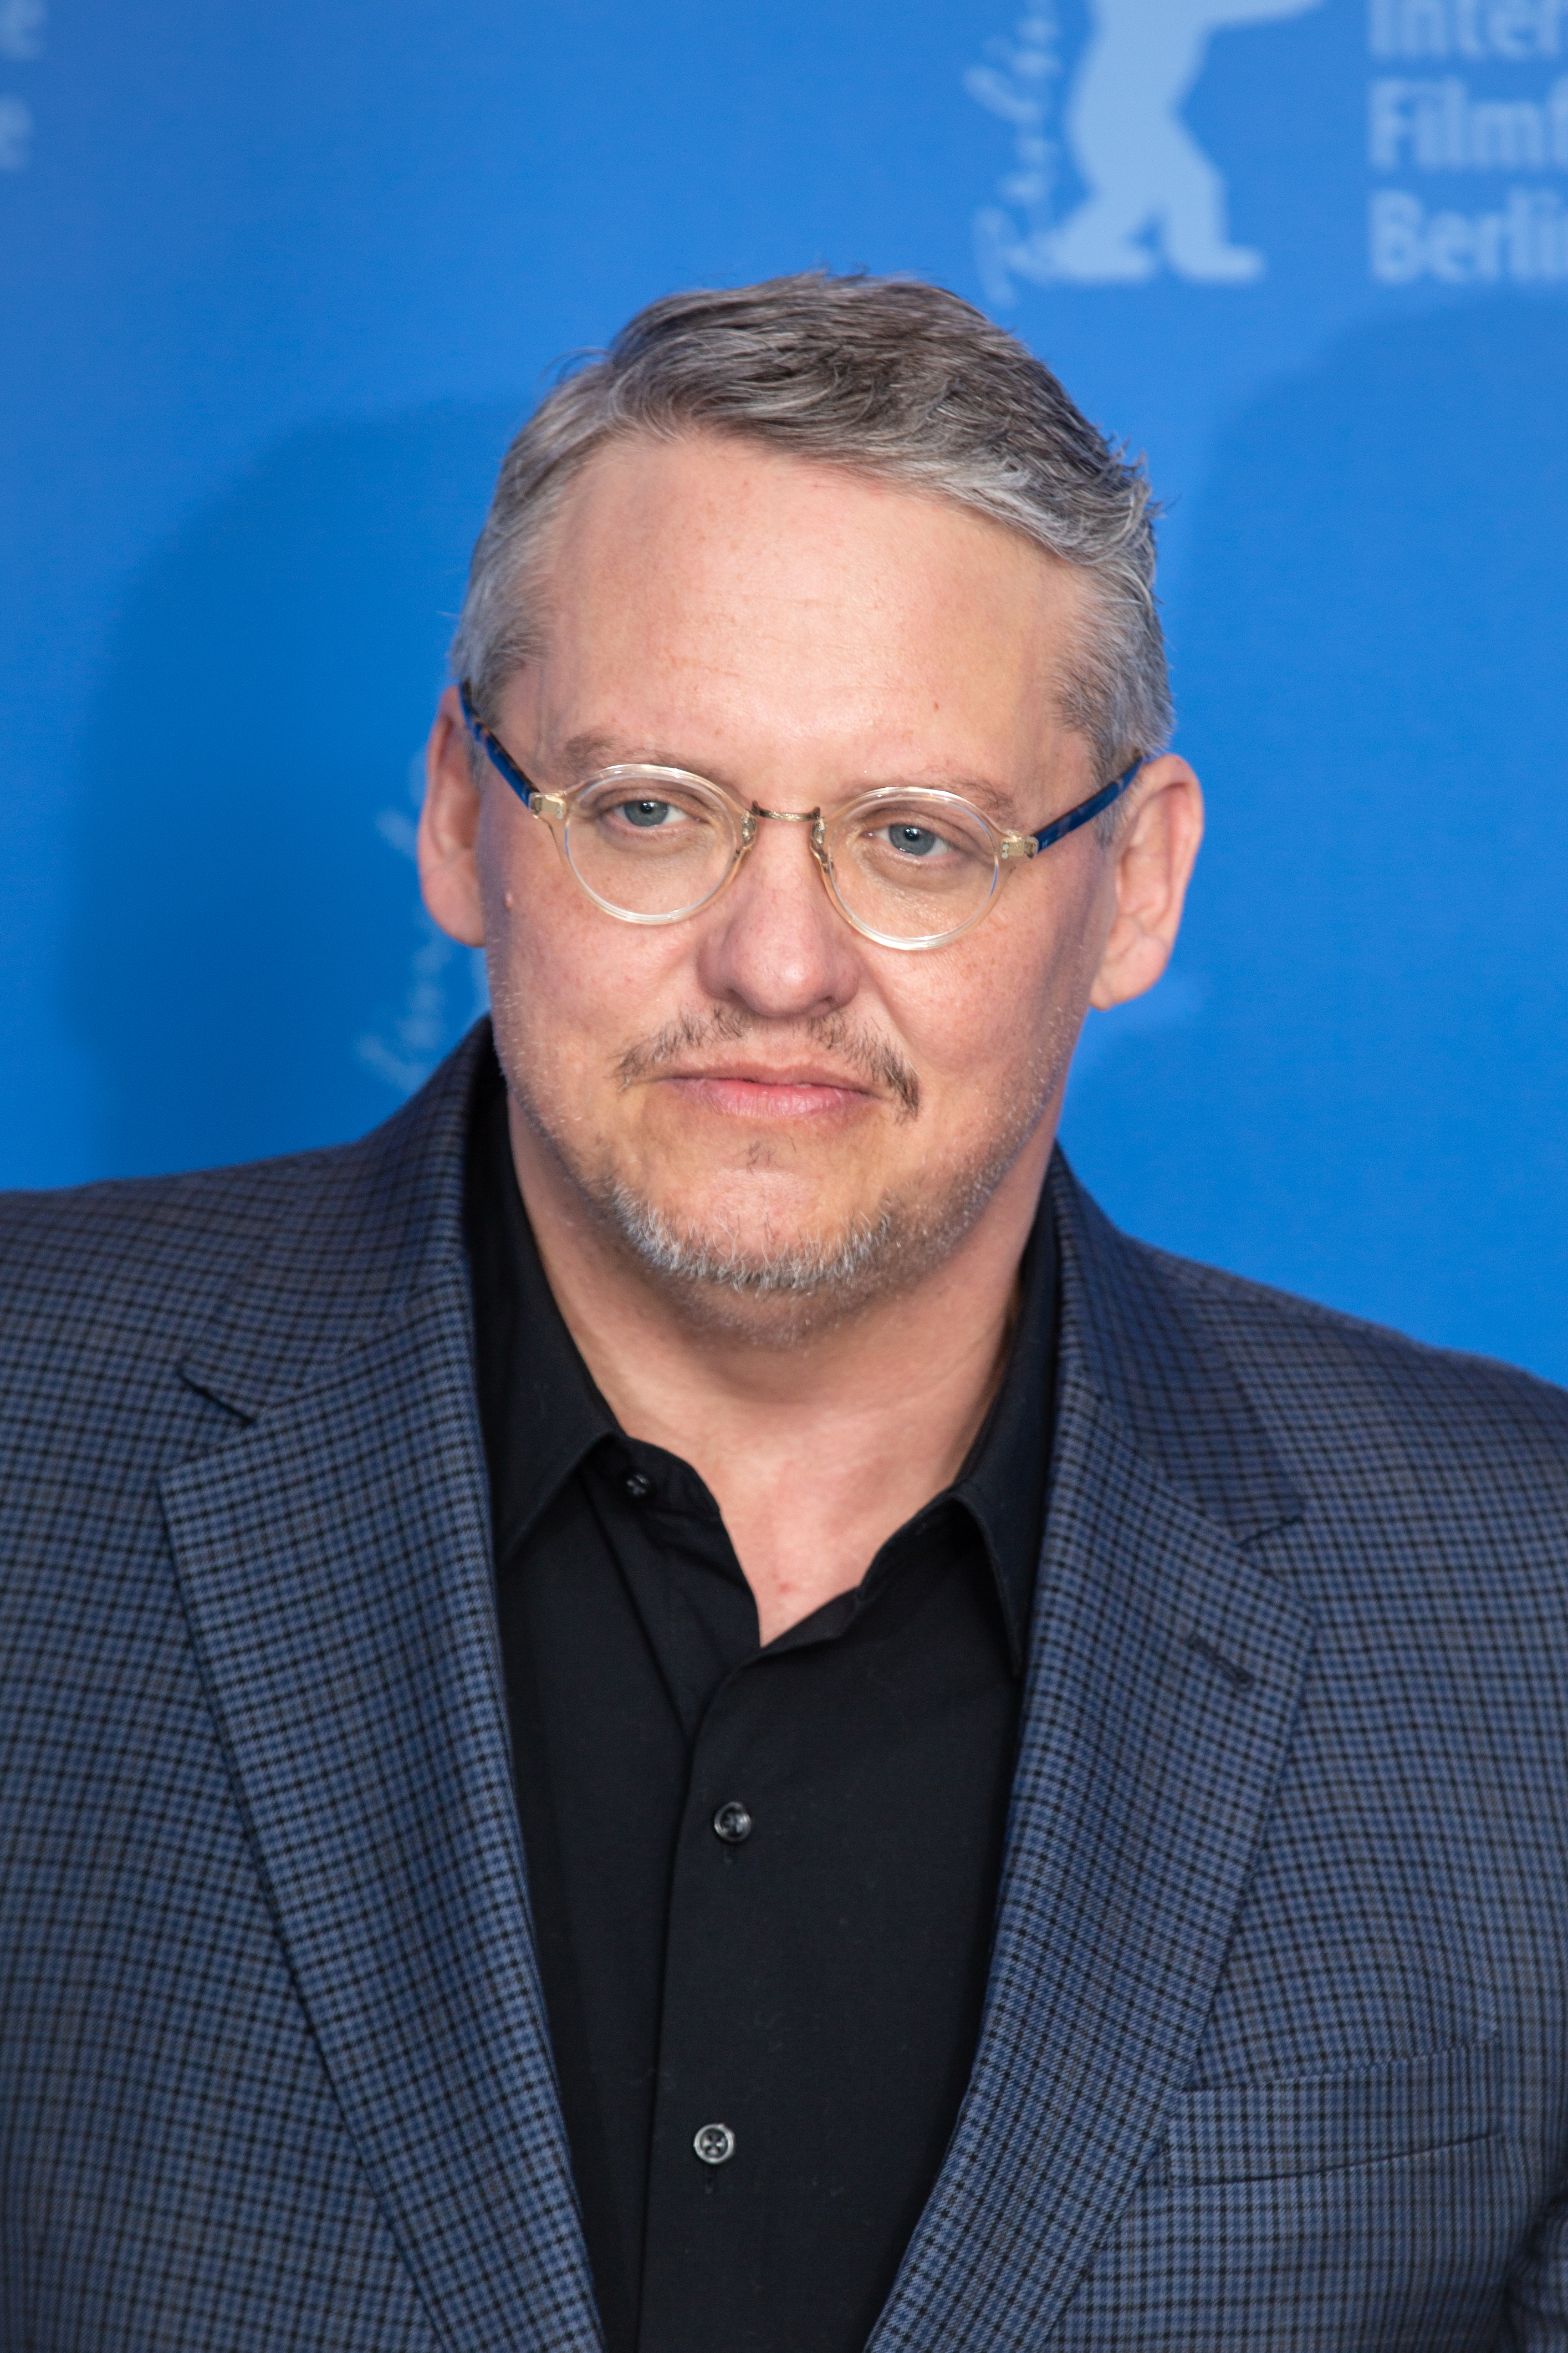 The 51-year old son of father (?) and mother(?) Adam McKay in 2019 photo. Adam McKay earned a  million dollar salary - leaving the net worth at  million in 2019